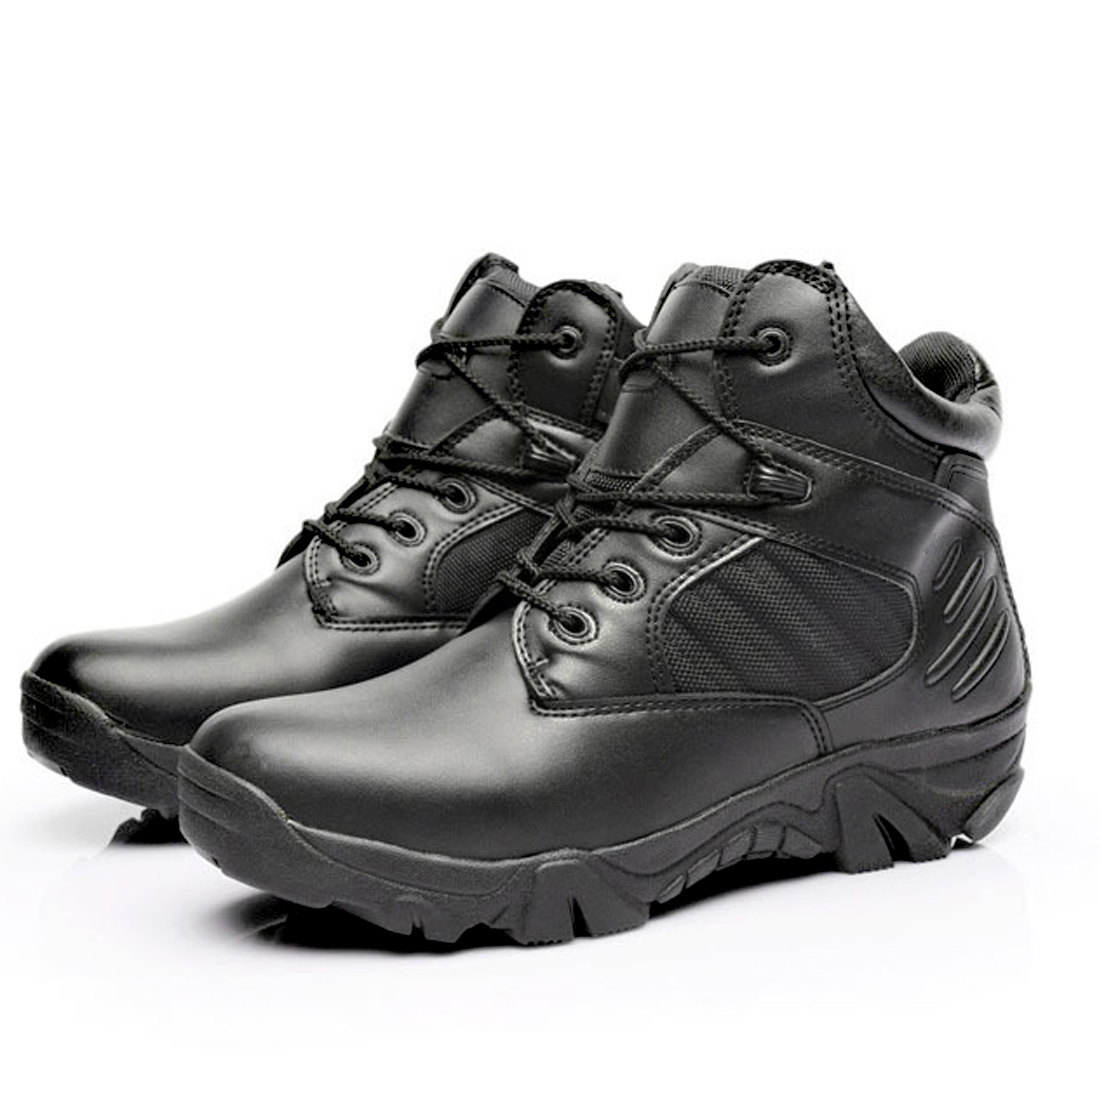 ФОТО Military Tactical Combat Outdoor Sport Army Men Boots Desert Botas Hiking Autumn Shoes Travel Genuine leather High Boots Male